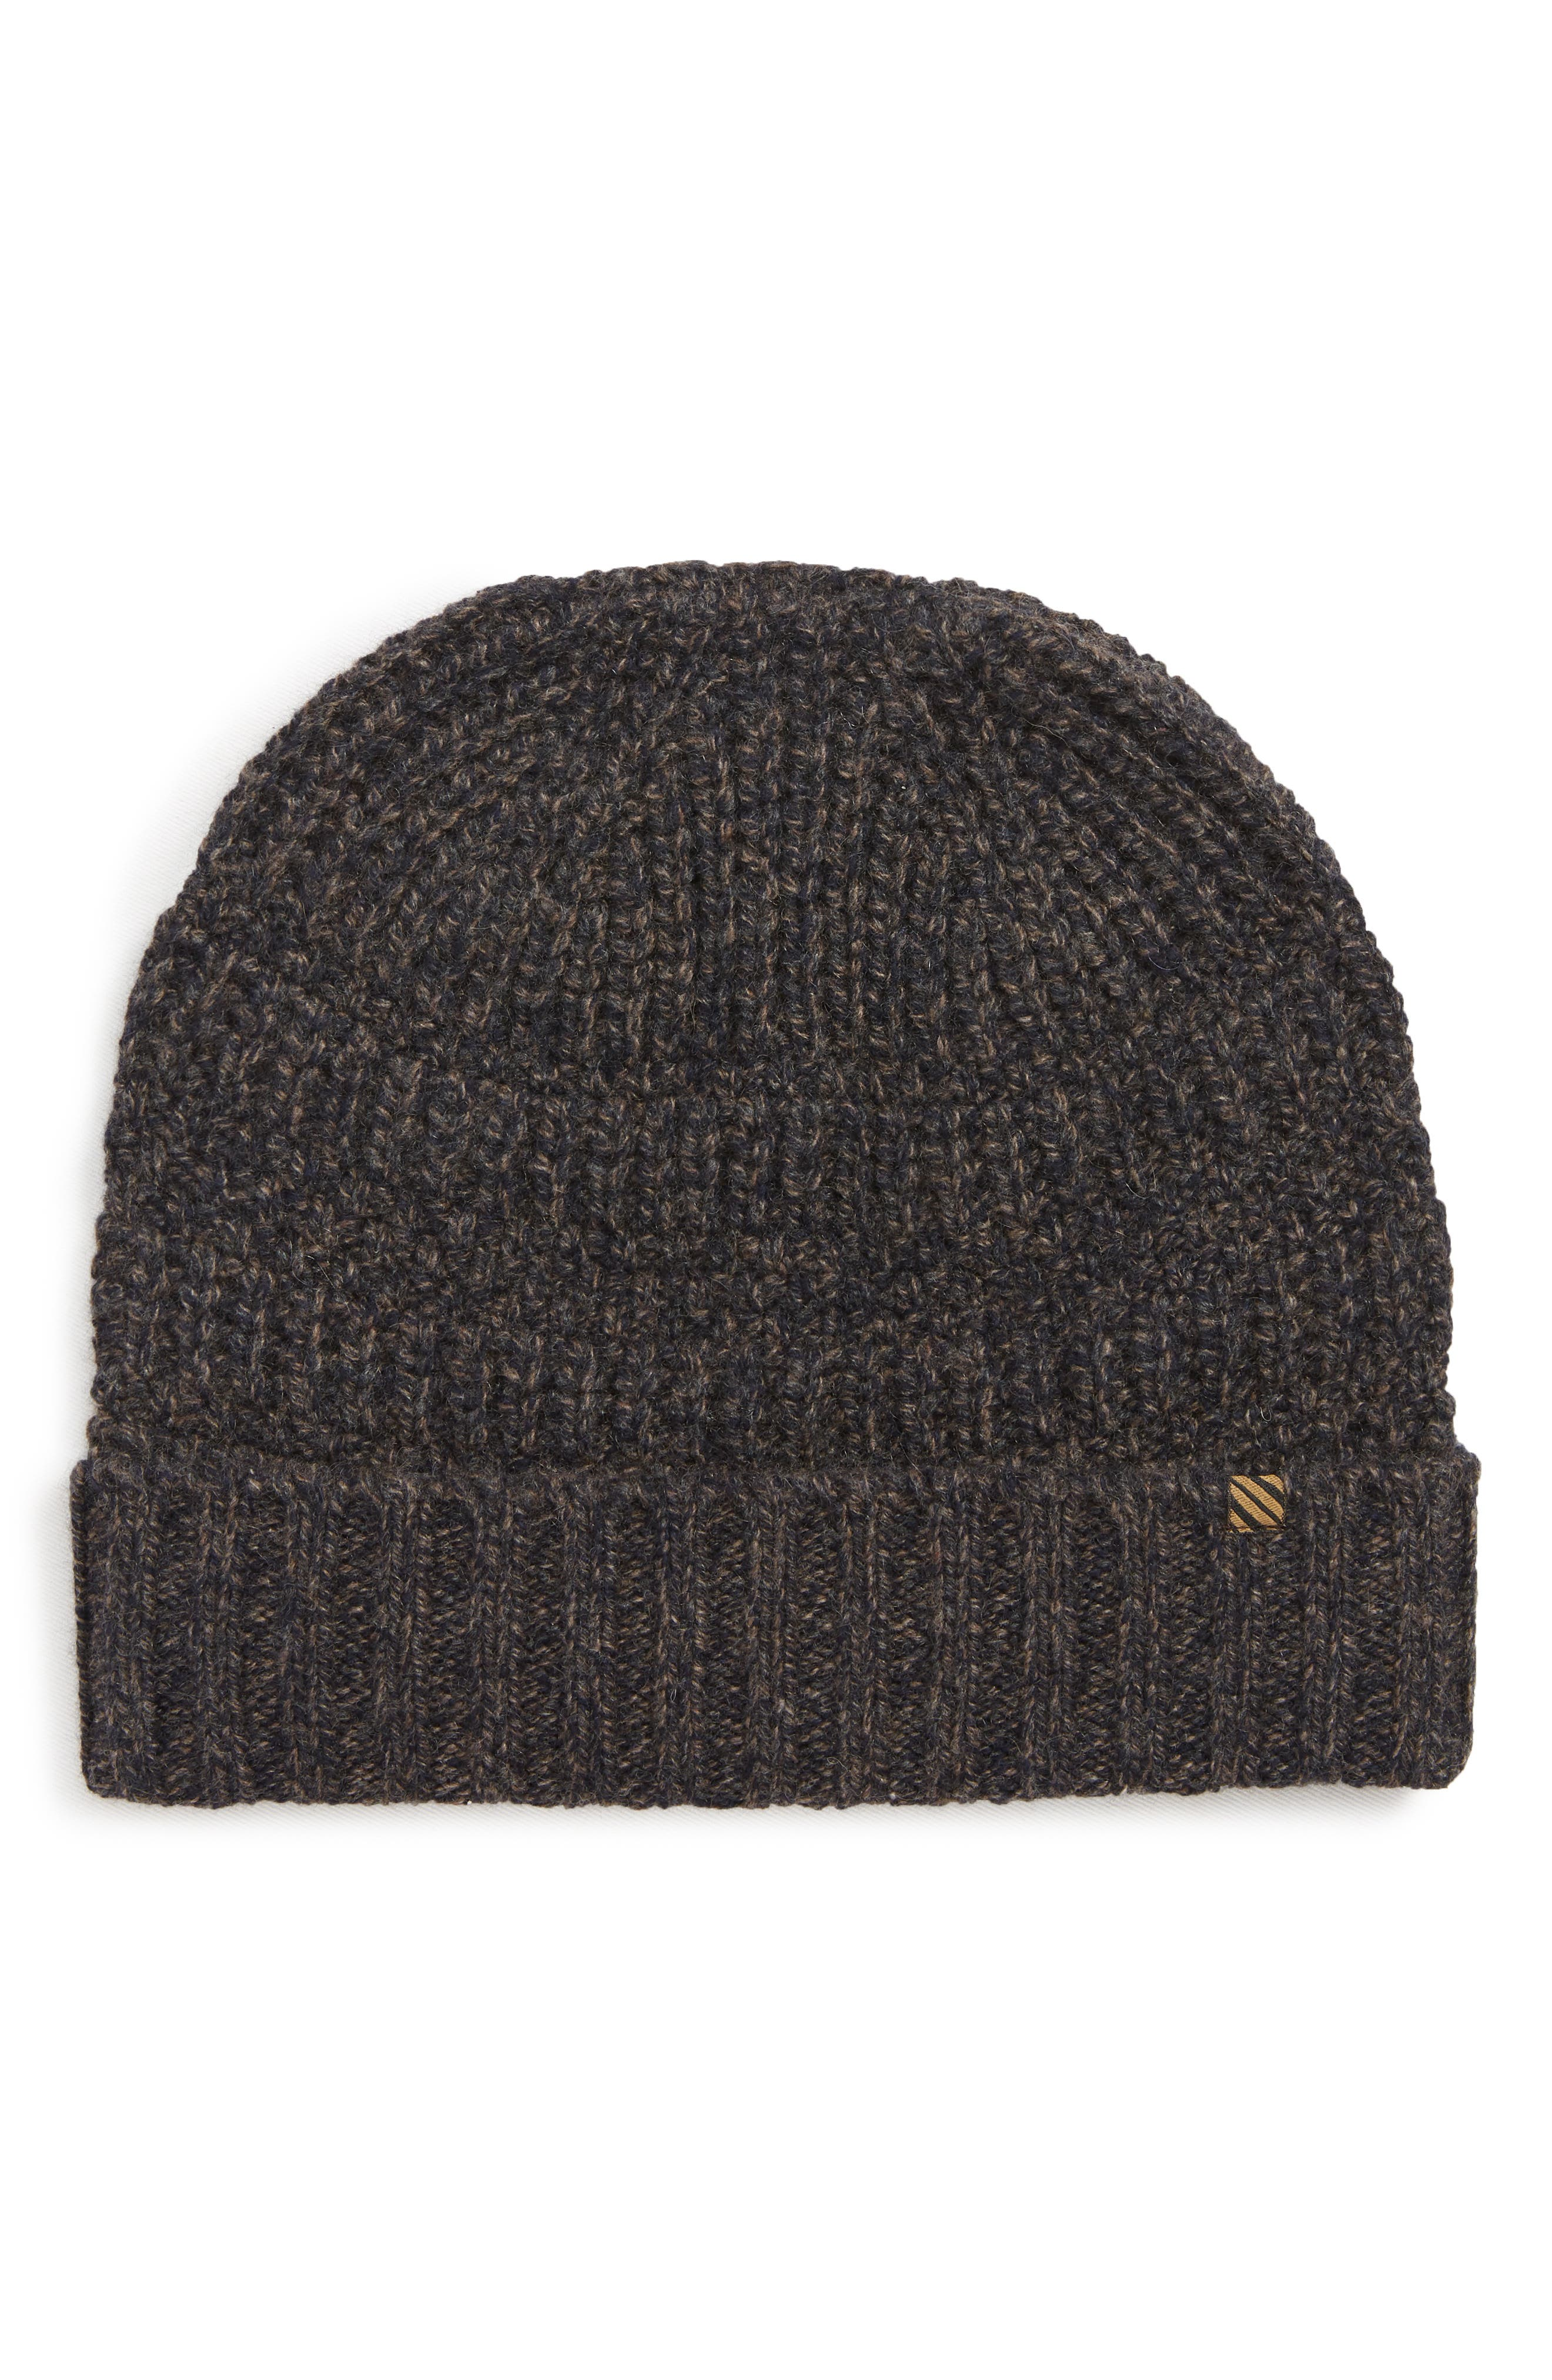 Ribbon Shaker Cashmere Beanie - Blue in Navy